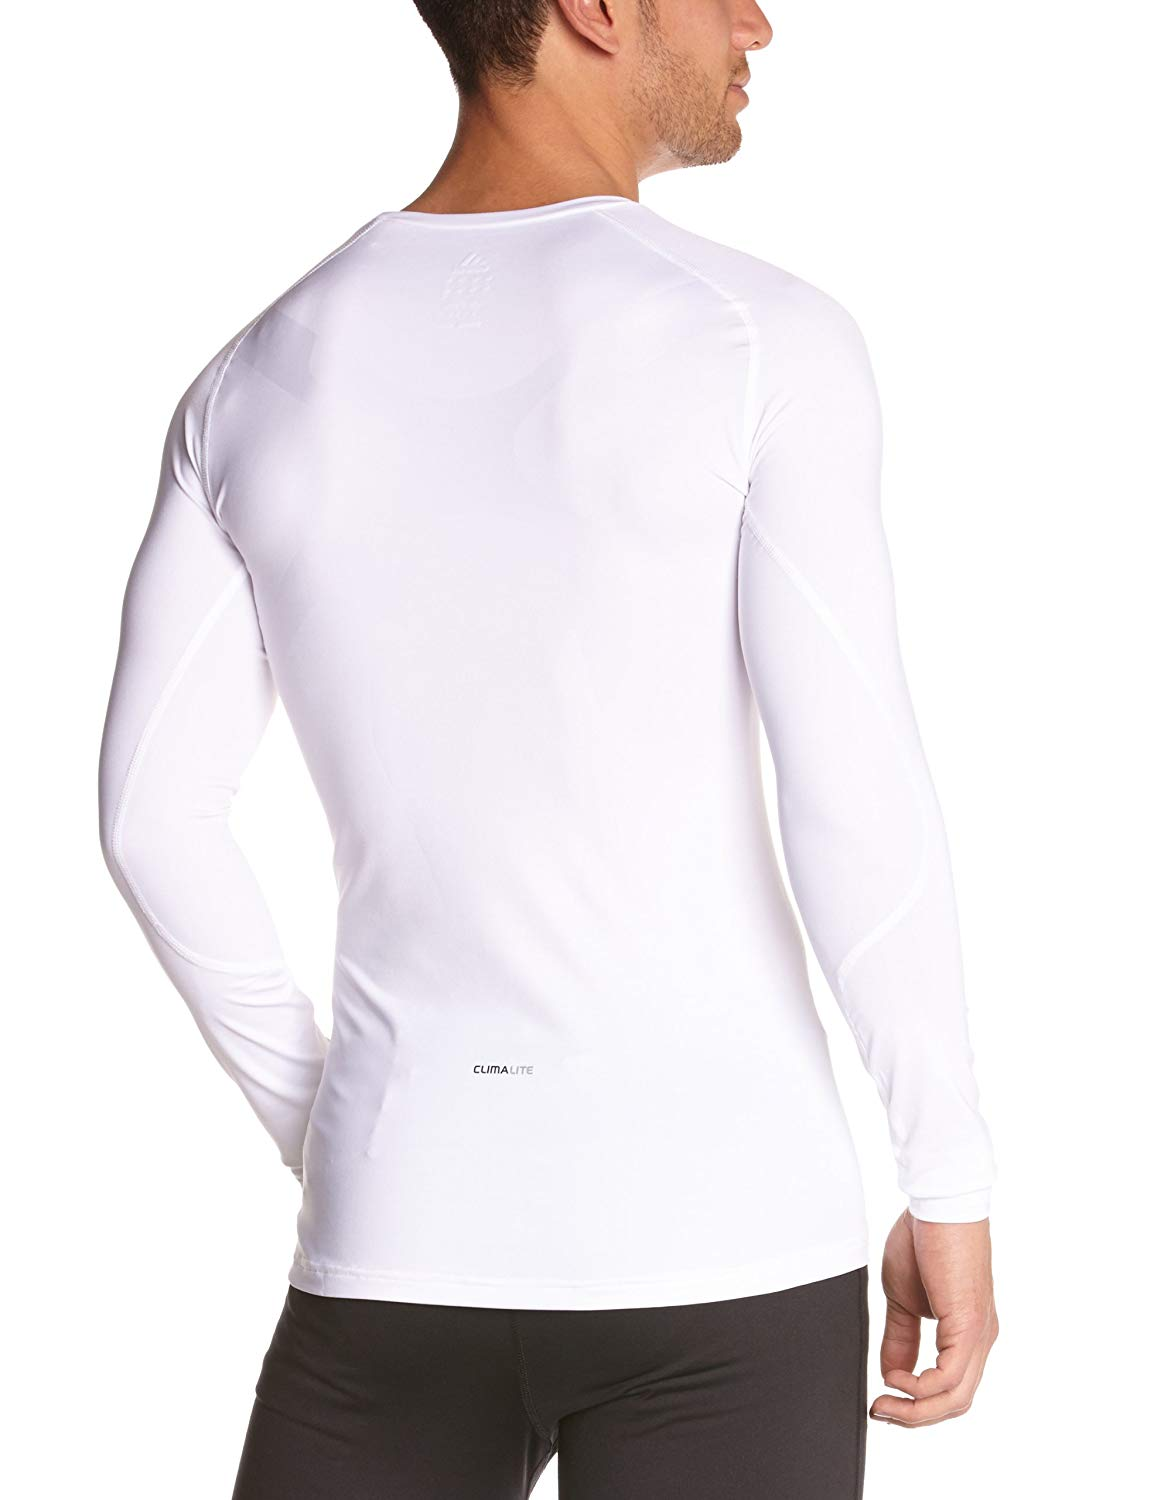 Adidas Men's Base Layer Tech Fit, T-Shirt Long Sleeve White